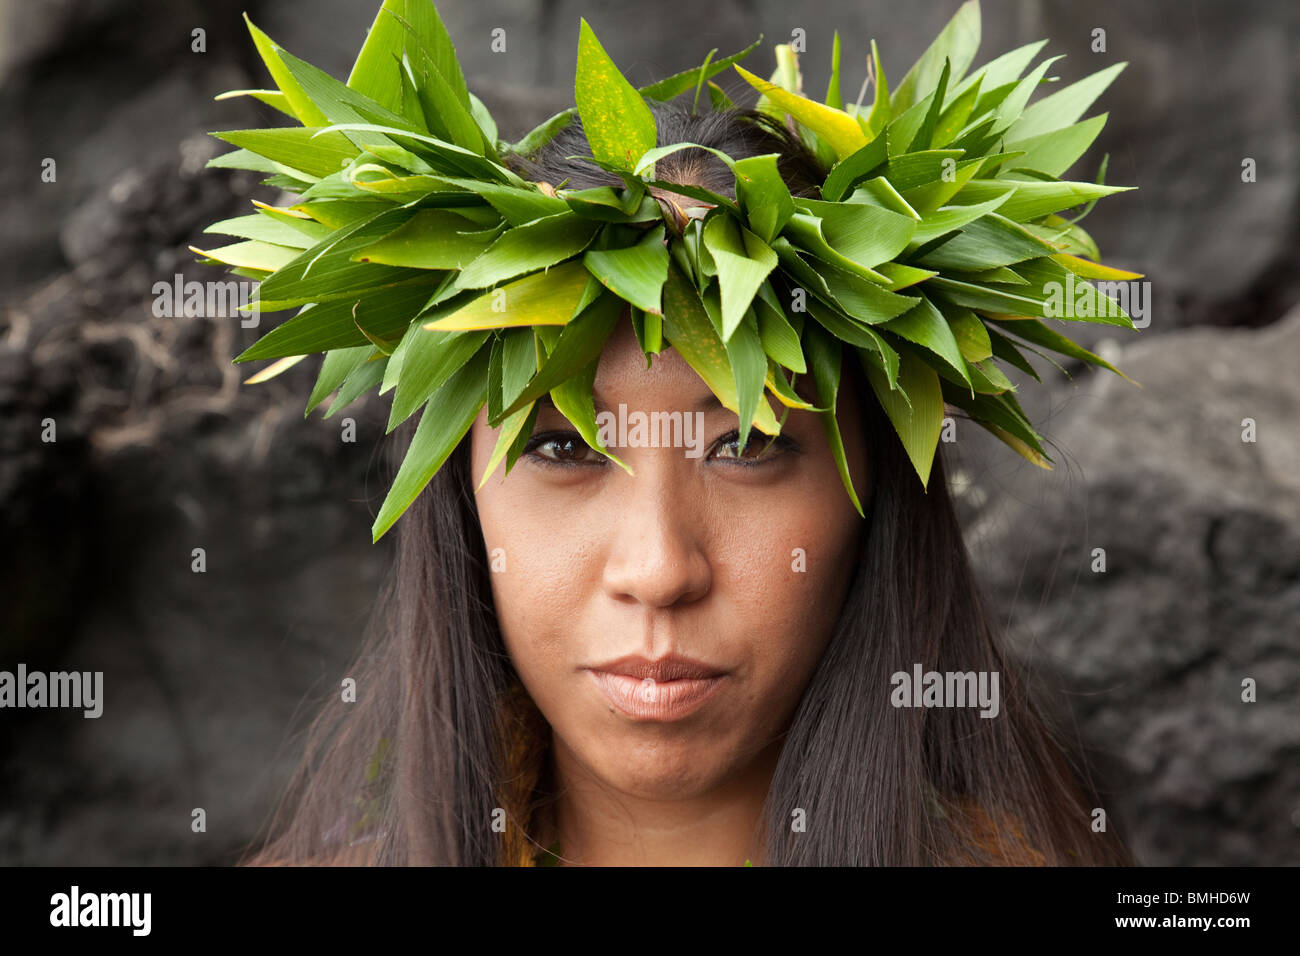 Female Hawaiian hula dancer - Stock Image